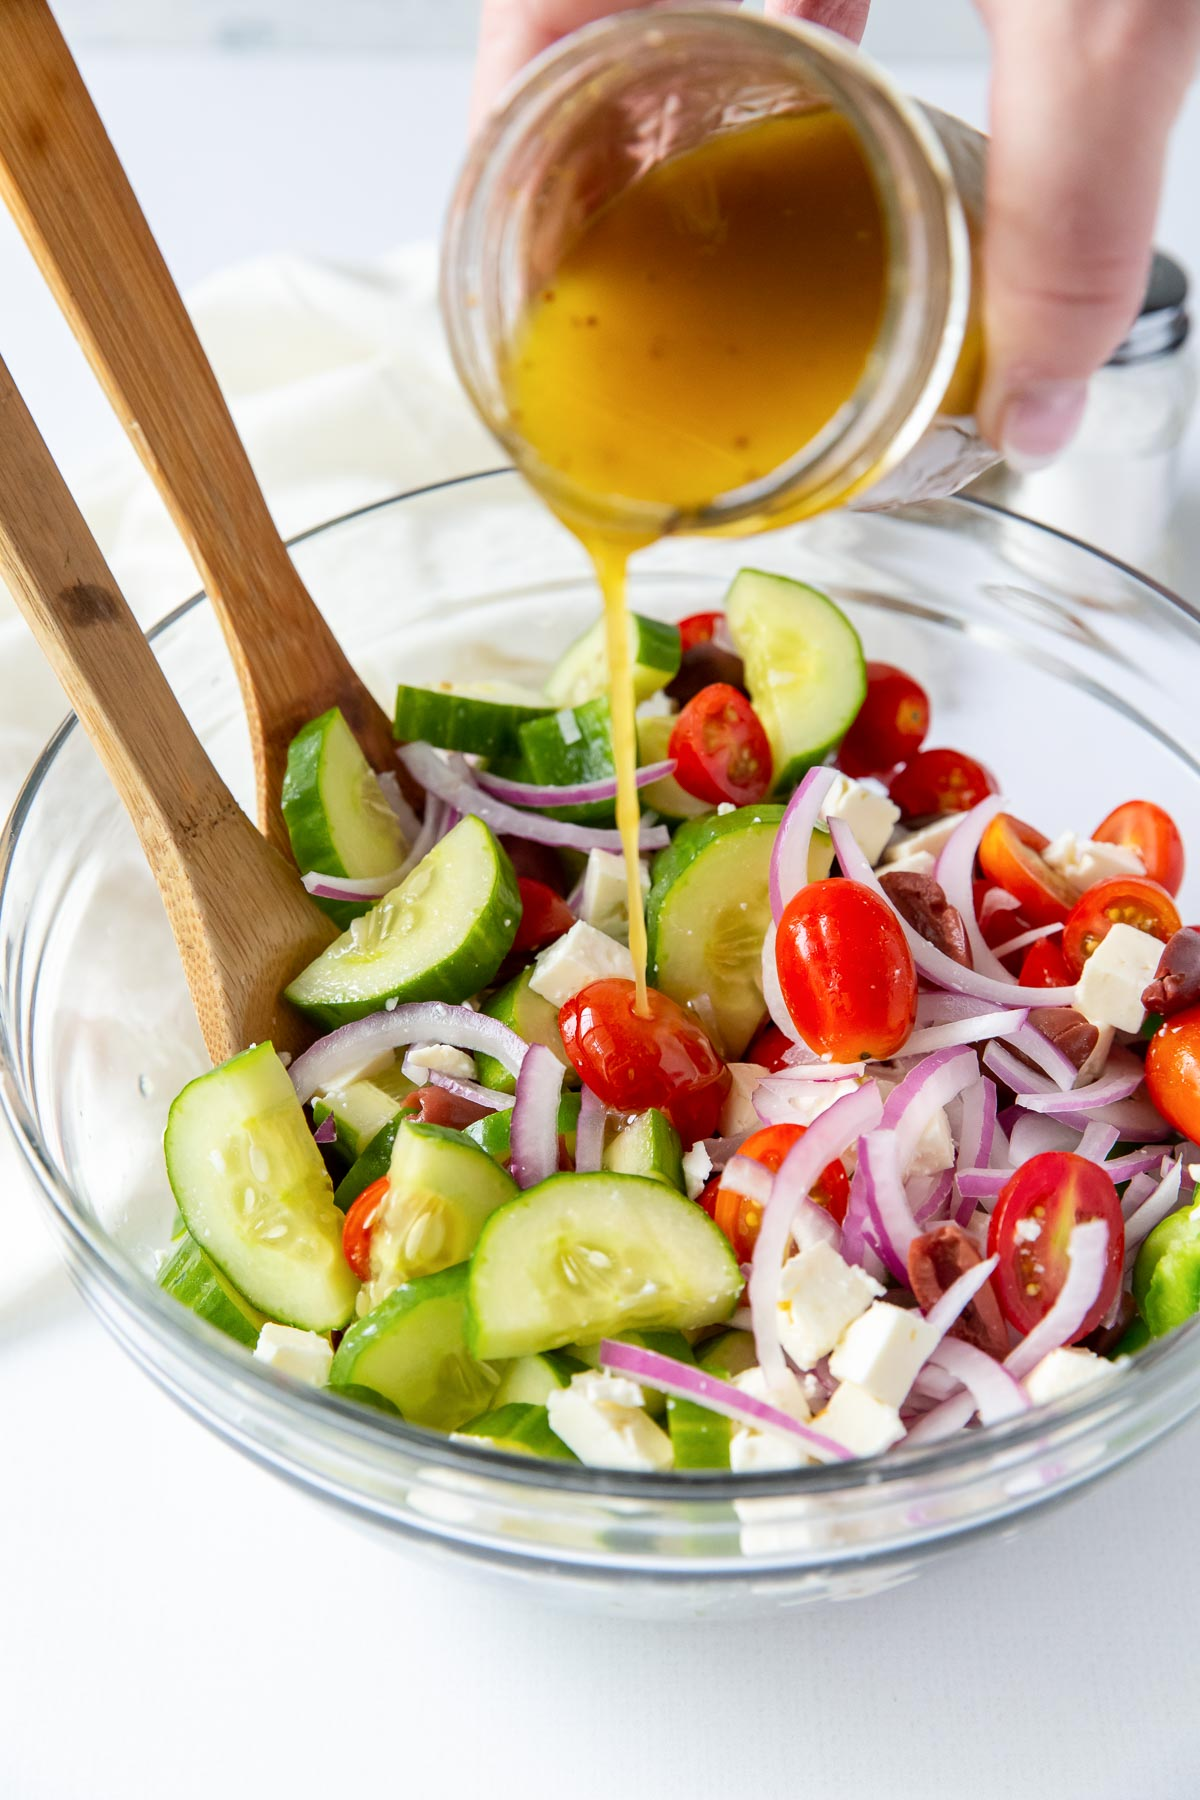 pouring greek salad dressing onto salad in a bowl